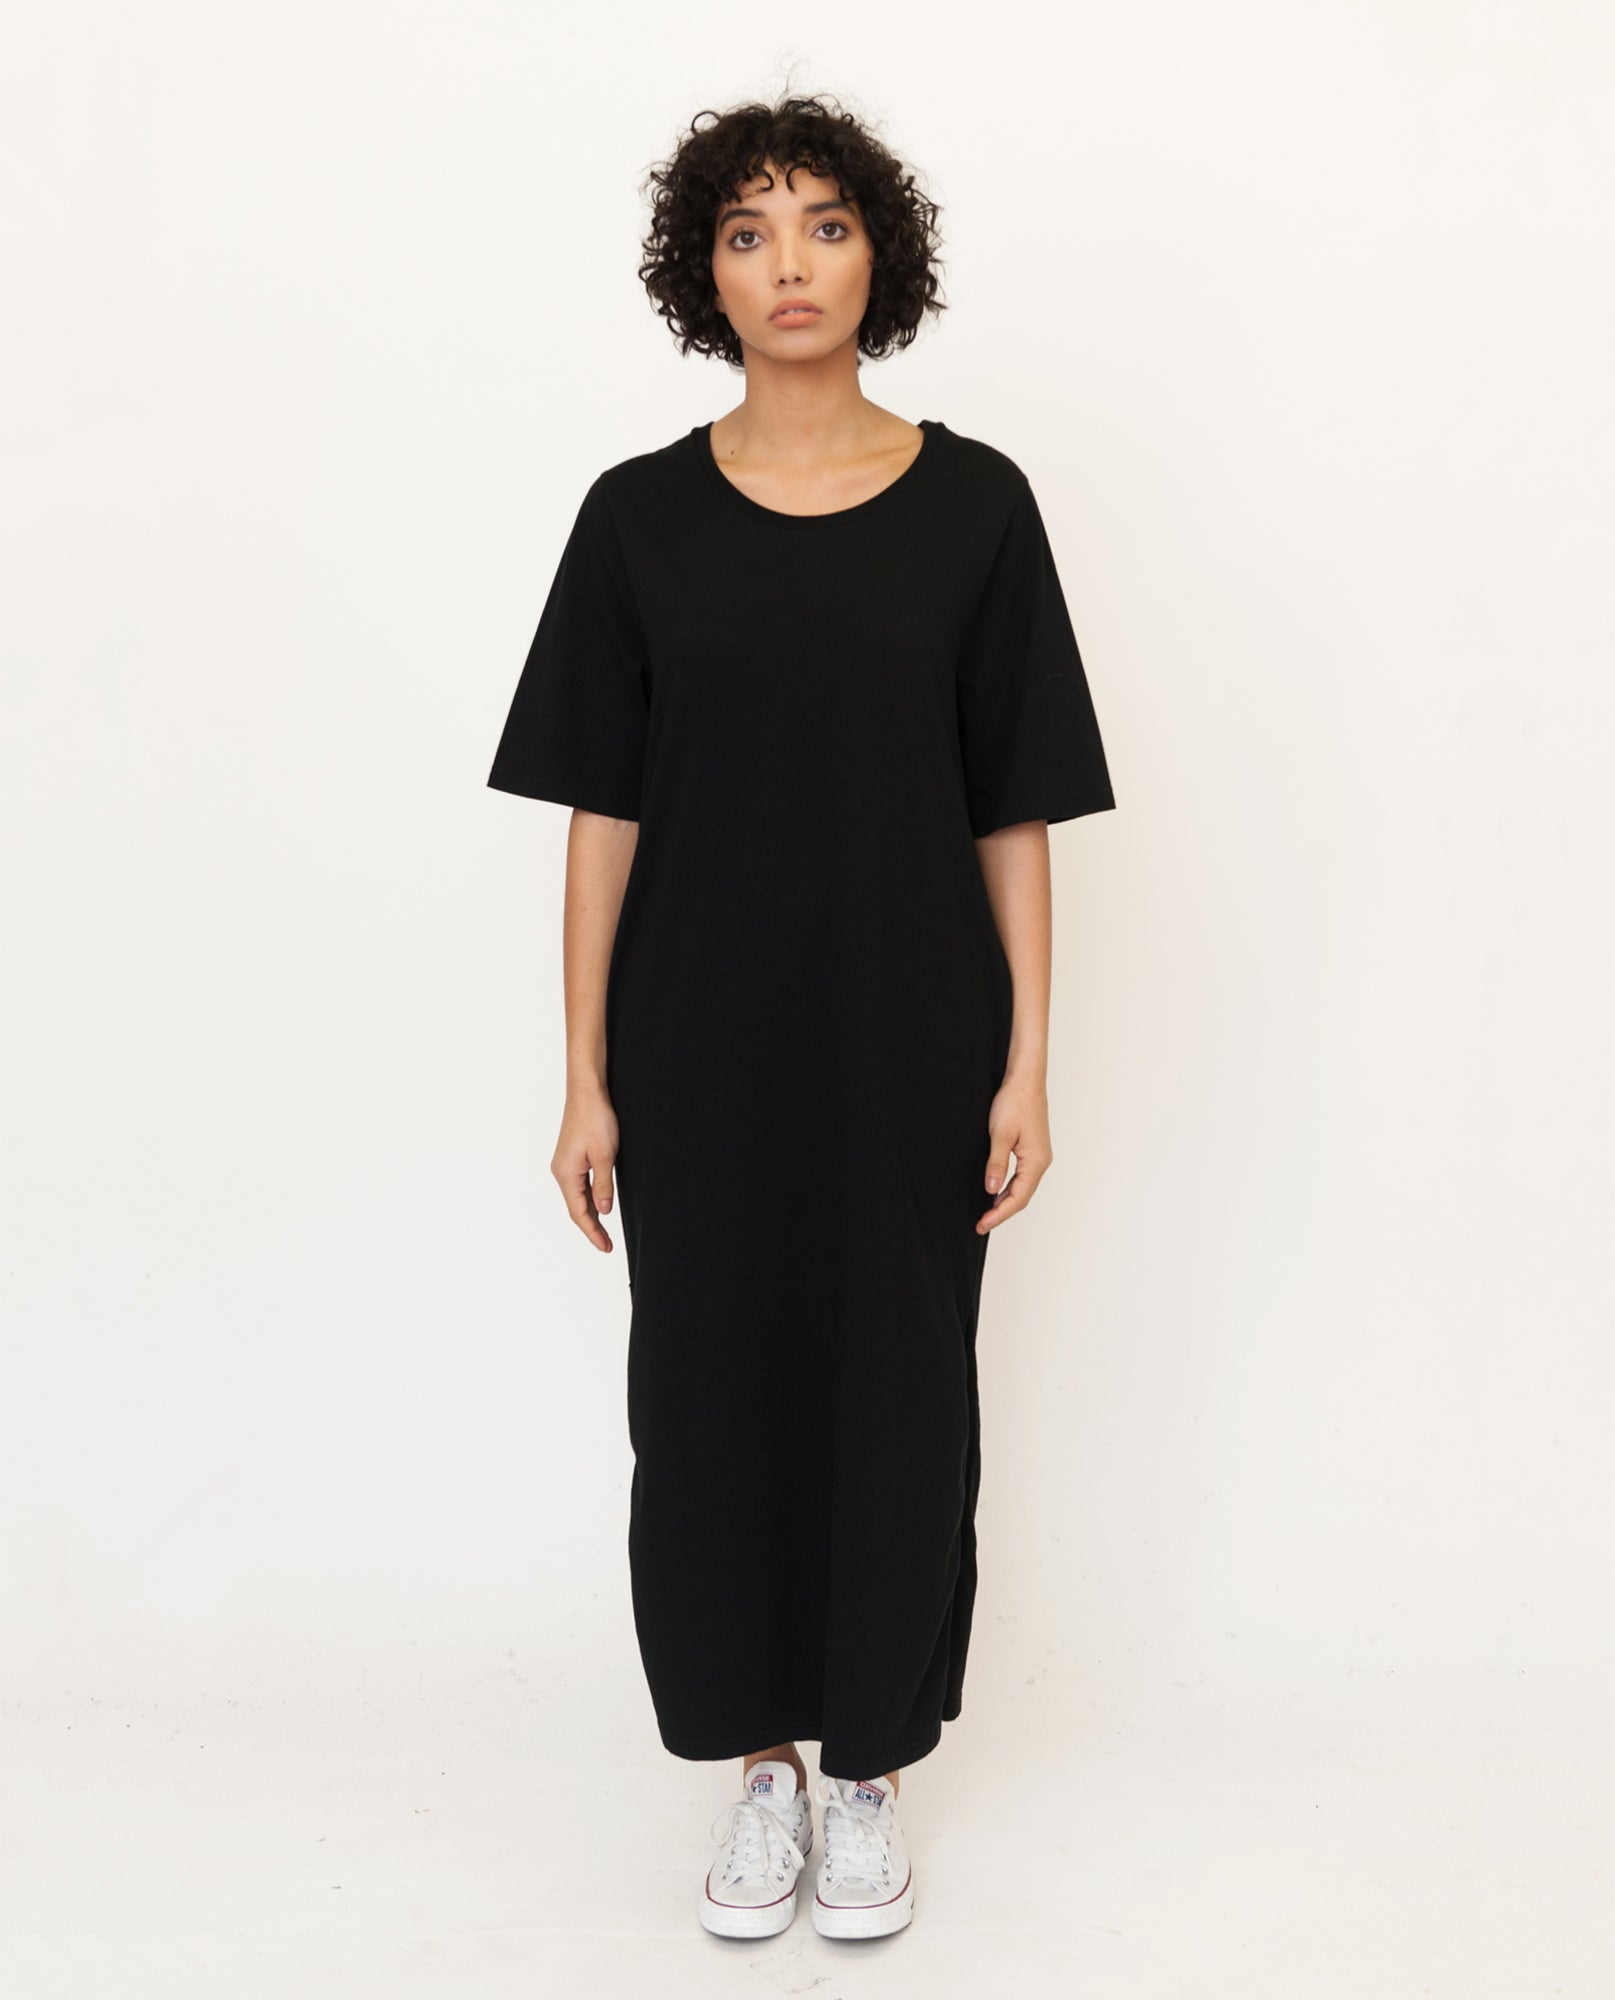 CHRISTIE Organic Cotton Dress In Black from Beaumont Organic